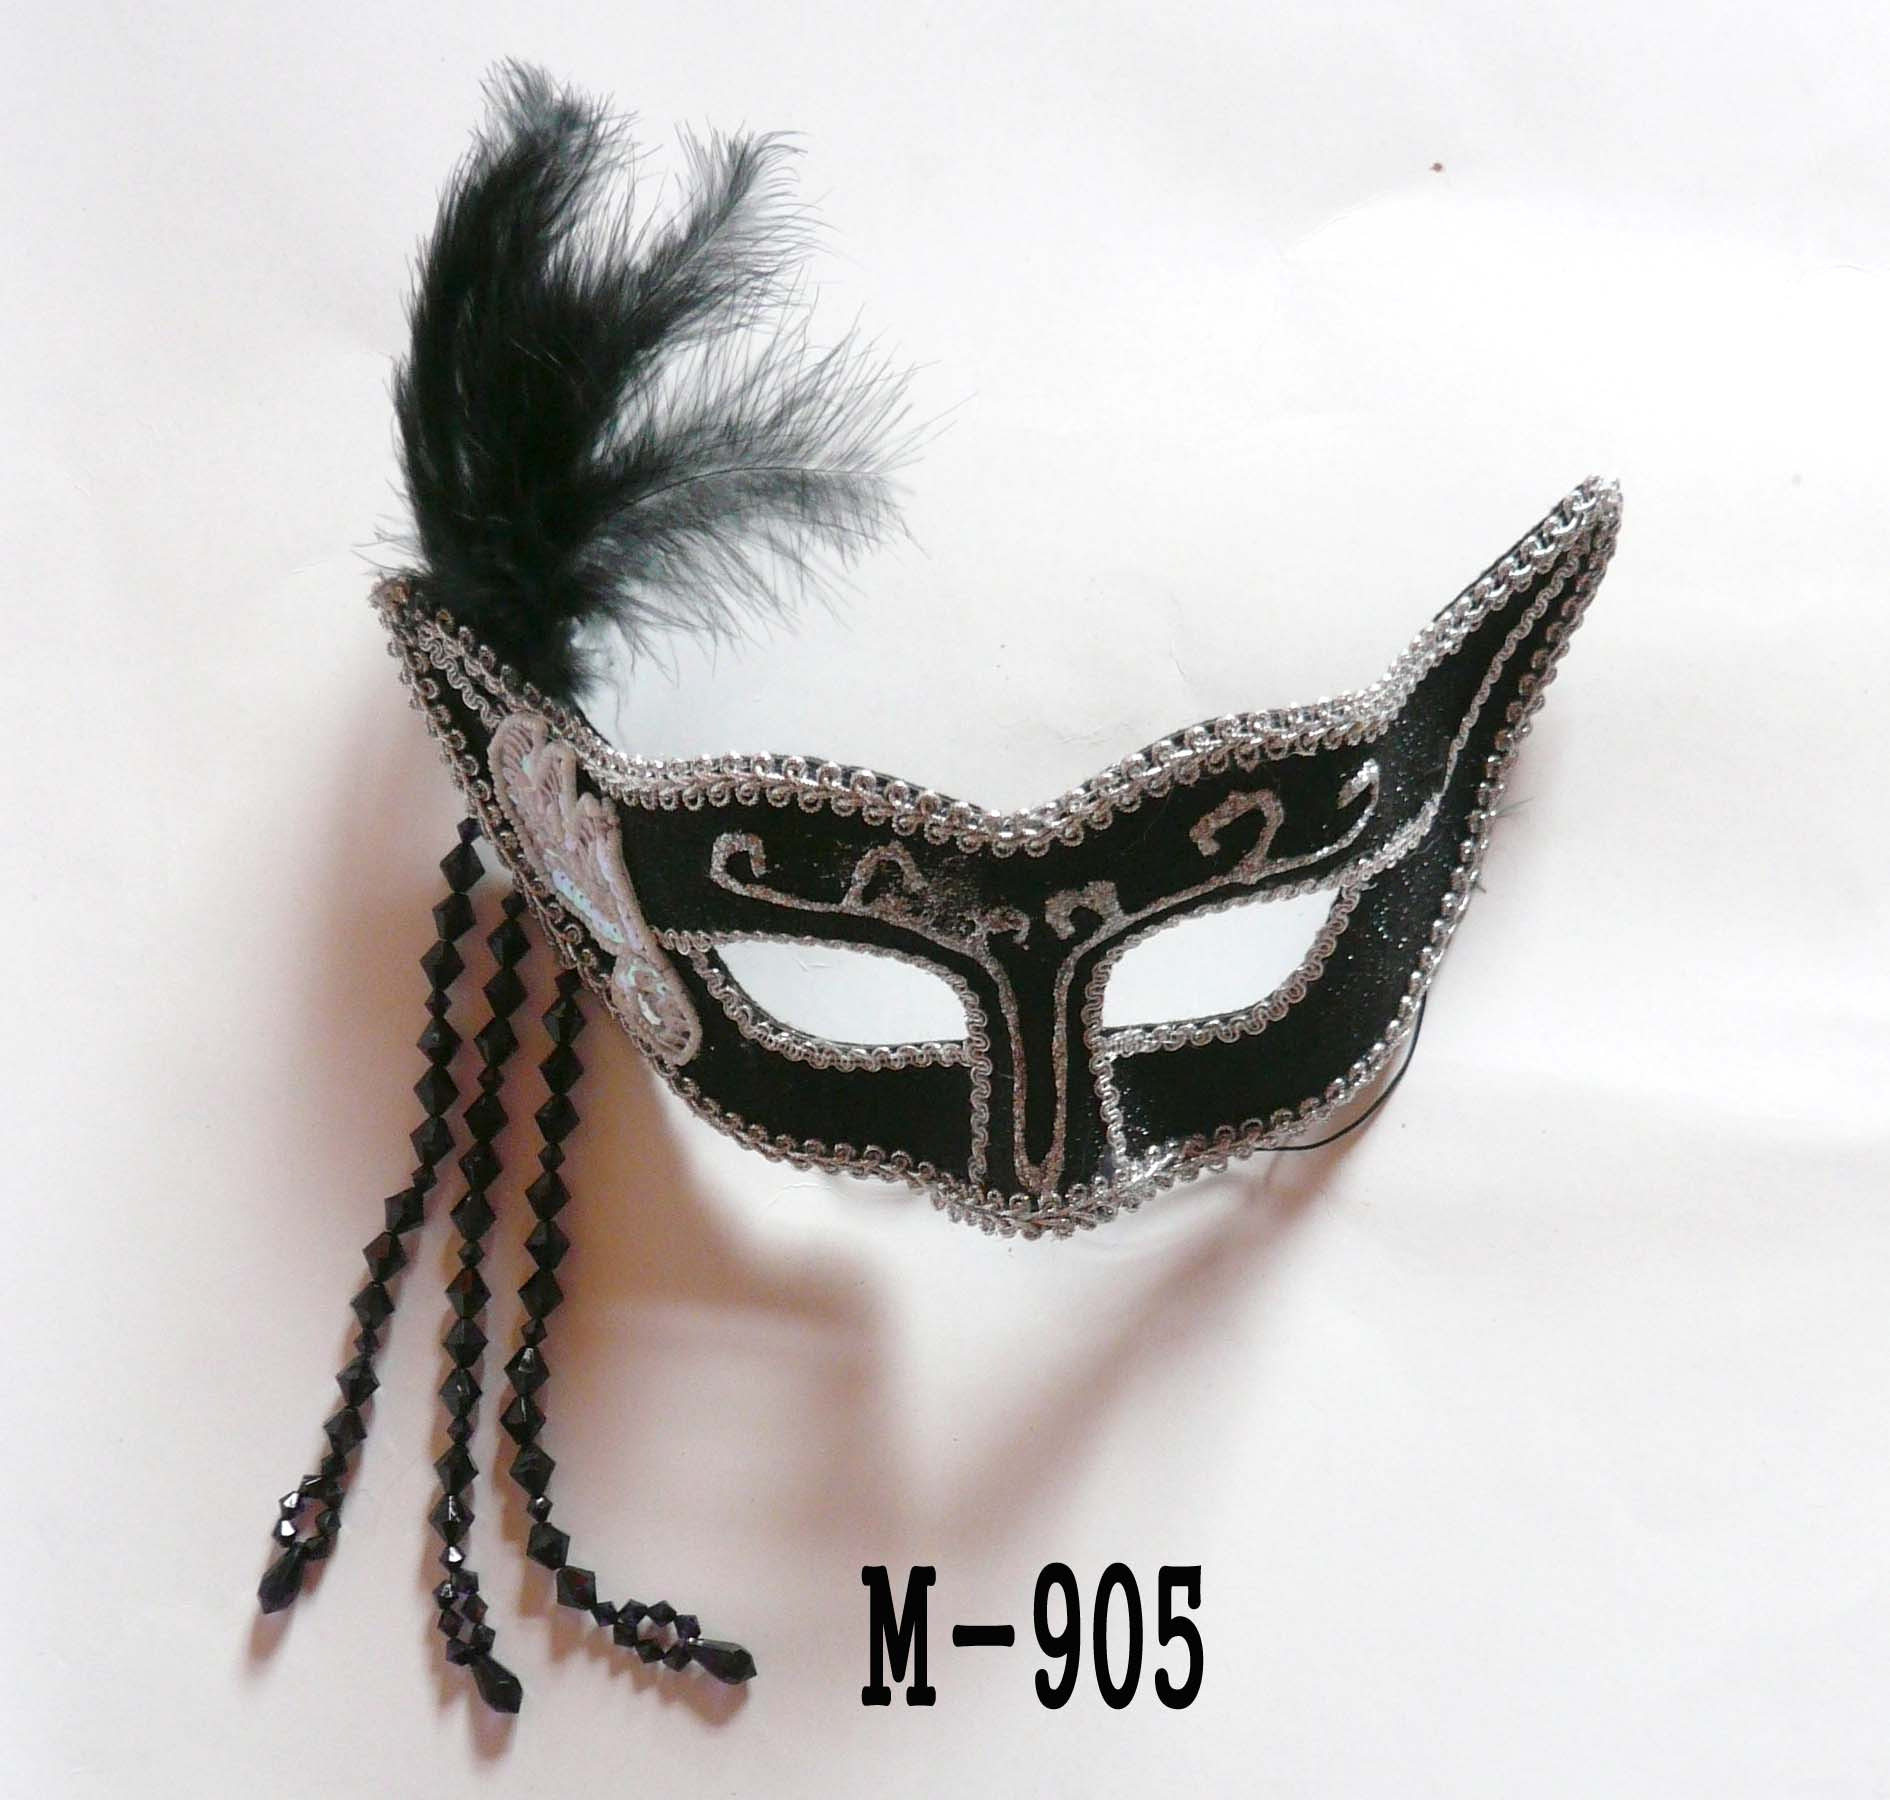 Cheap feather masks for sale - Made in China M-905